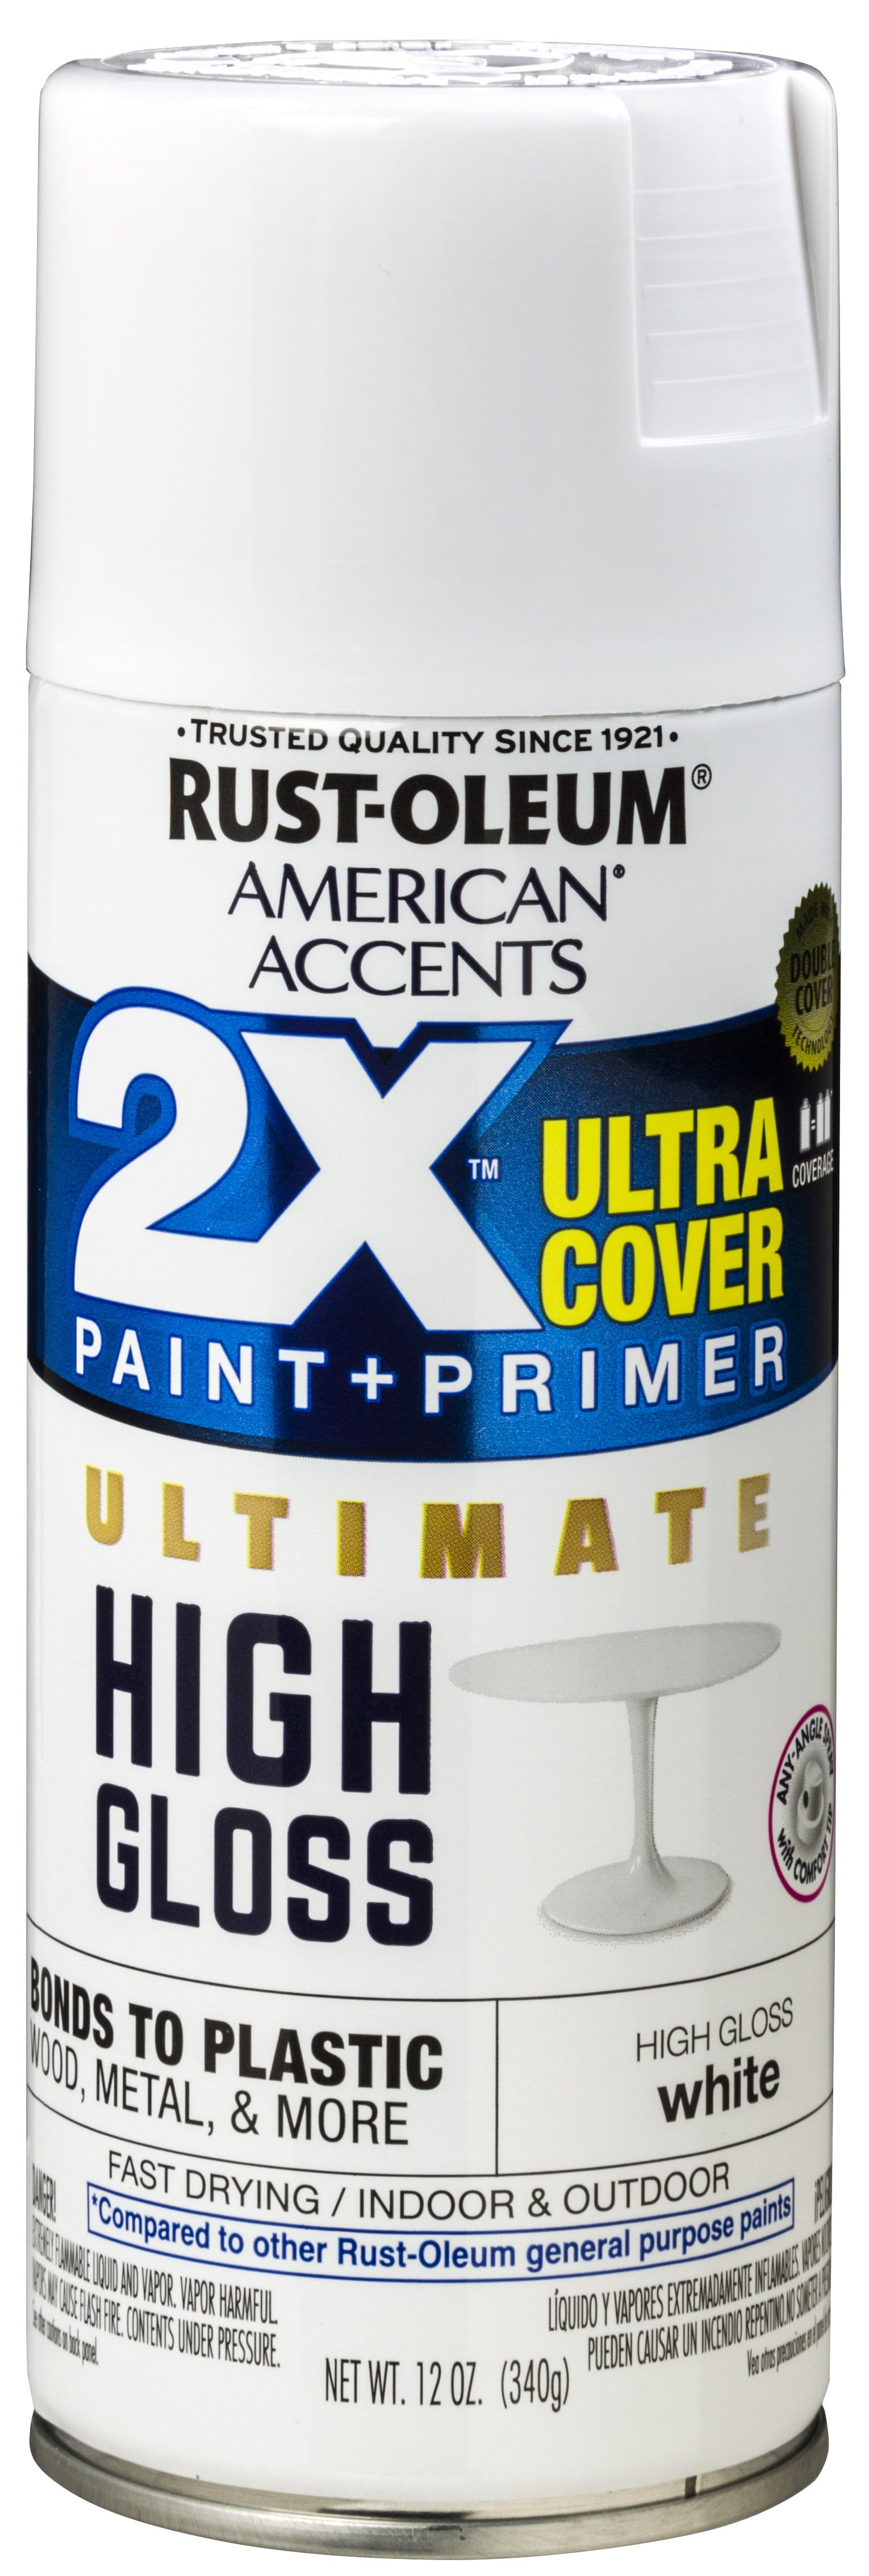 (3 Pack) Rust-Oleum American Accents Ultra Cover 2X Ultimate High Gloss White Spray Paint and Primer in 1, 12 oz